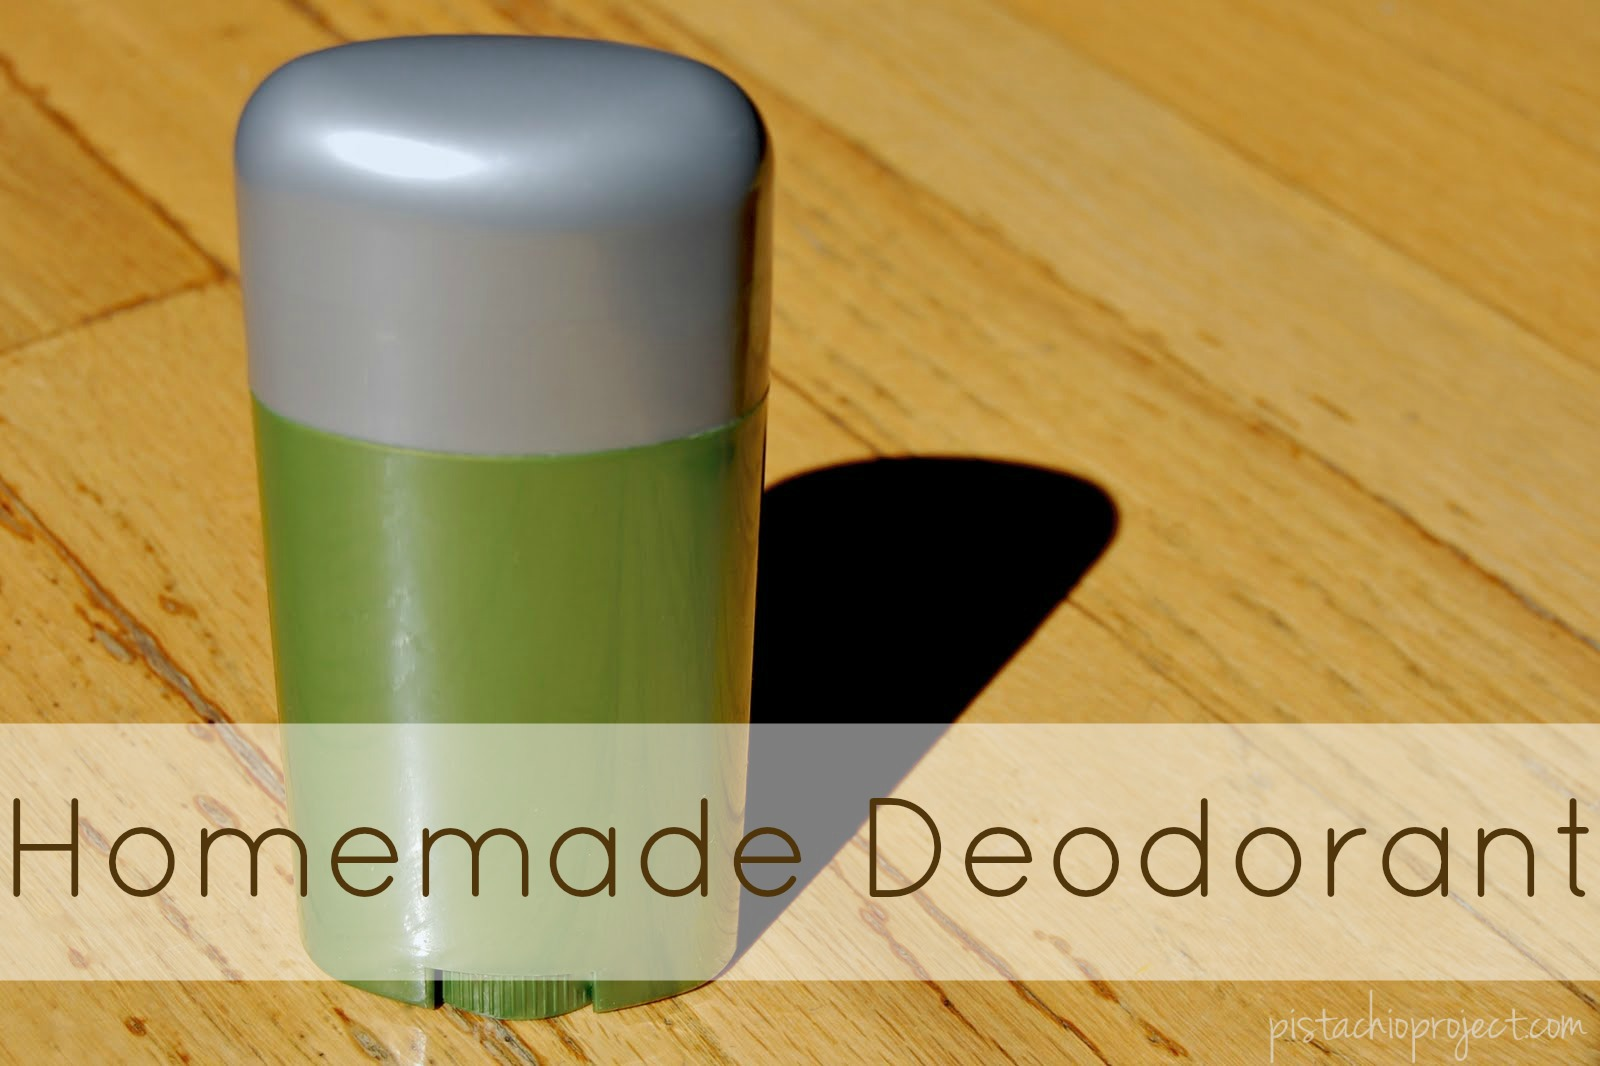 Homemade Deodorant - avoid the toxins! Making your own deodorant is so easy!